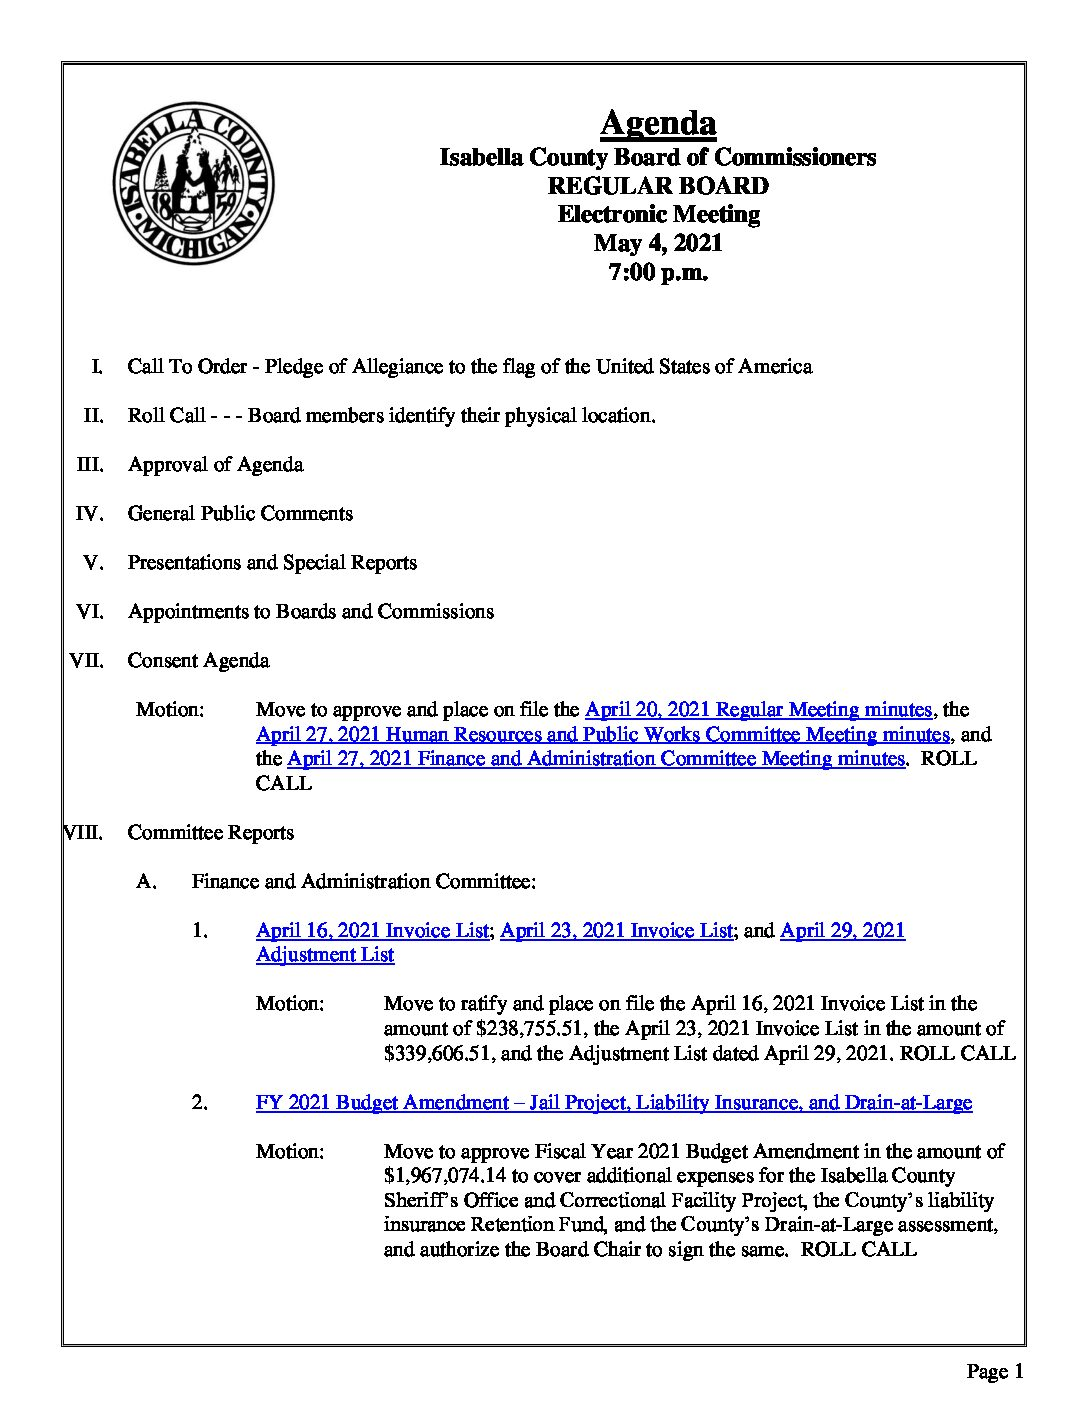 preview image of first page May 4, 2021 Agenda